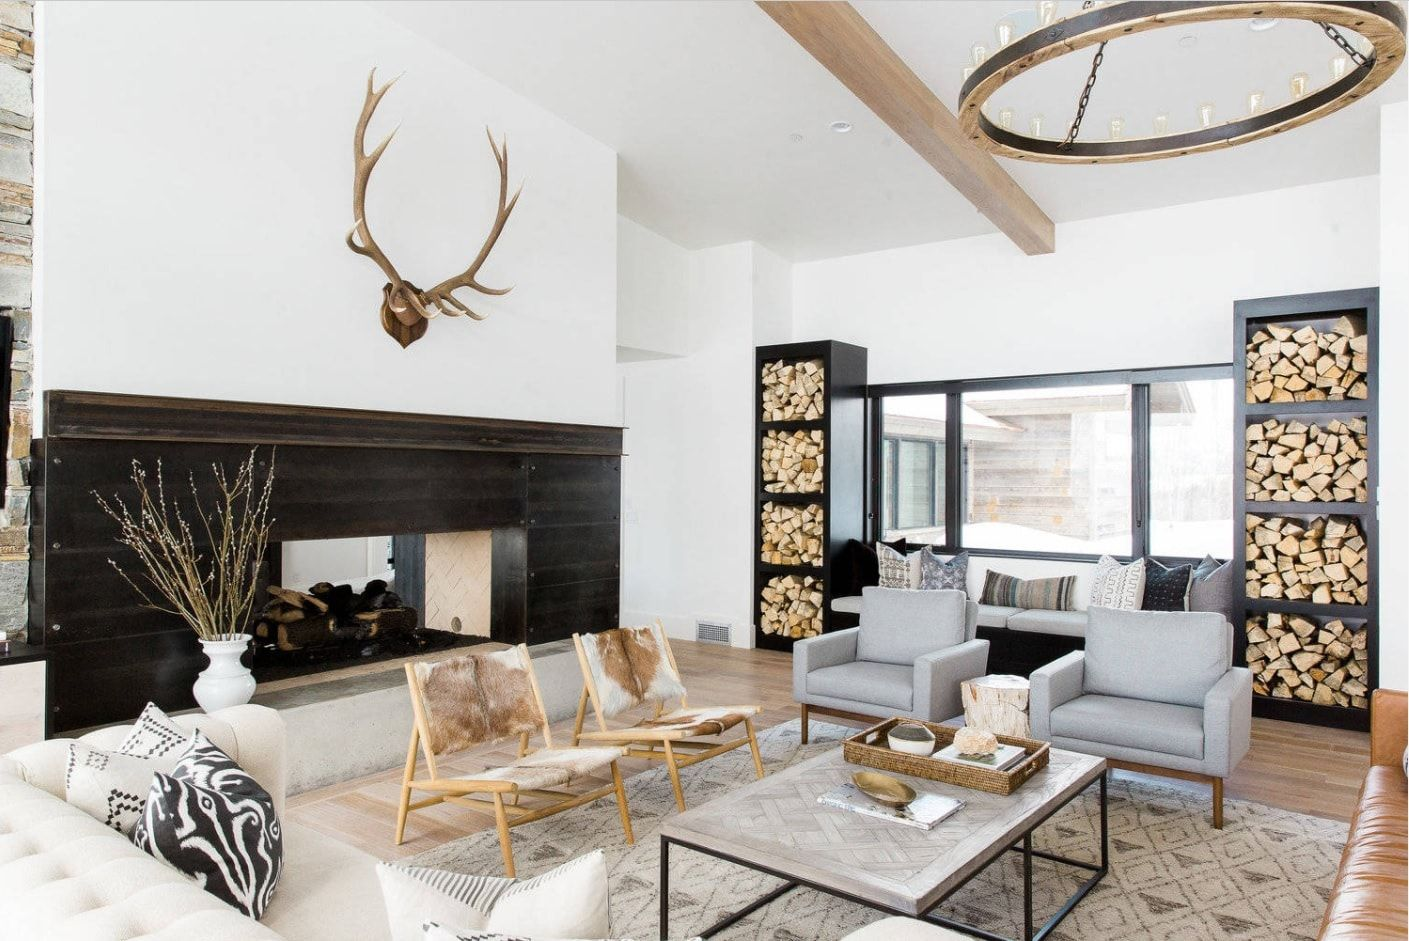 White loft styled interior with black fireplace and antlers above it